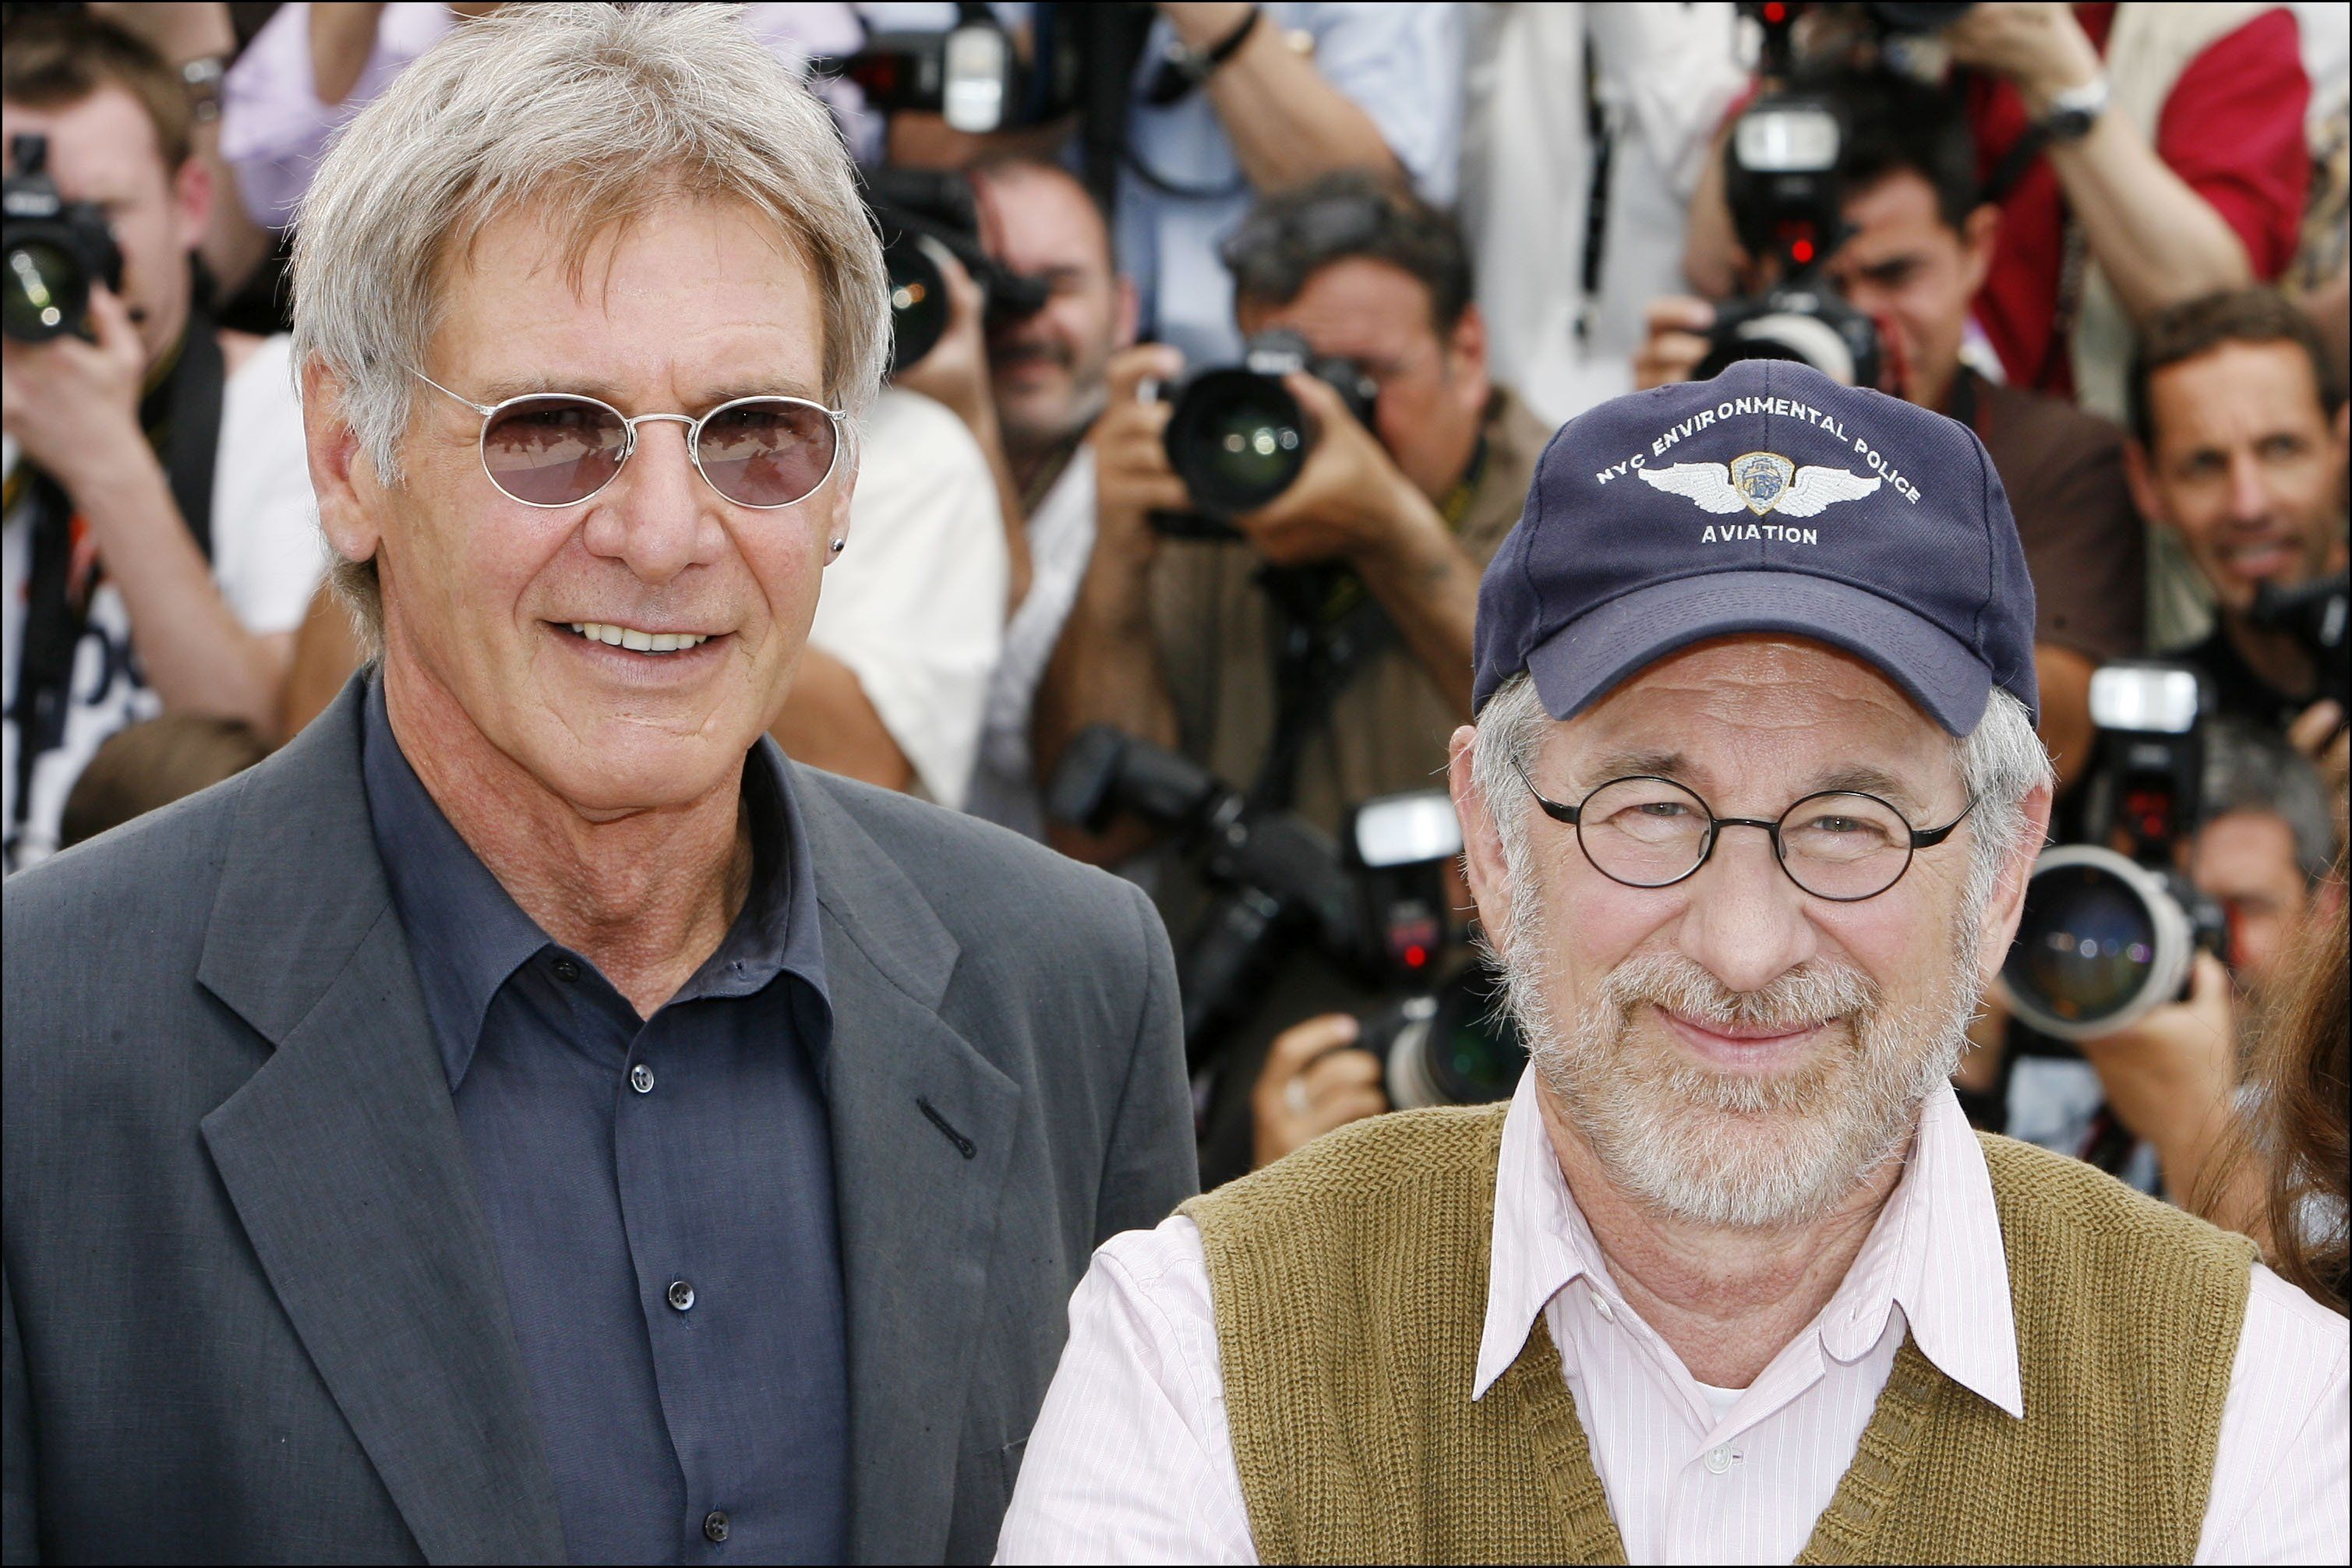 FRANCE - MAY 18:  Photocall of 'Indiana Jones 4' at the Cannes film festival In Cannes, France On May 18, 2008- Harrison Ford, Steven Spielberg.  (Photo by Pool BENAINOUS/SANCHEZ/Gamma-Rapho via Getty Images)